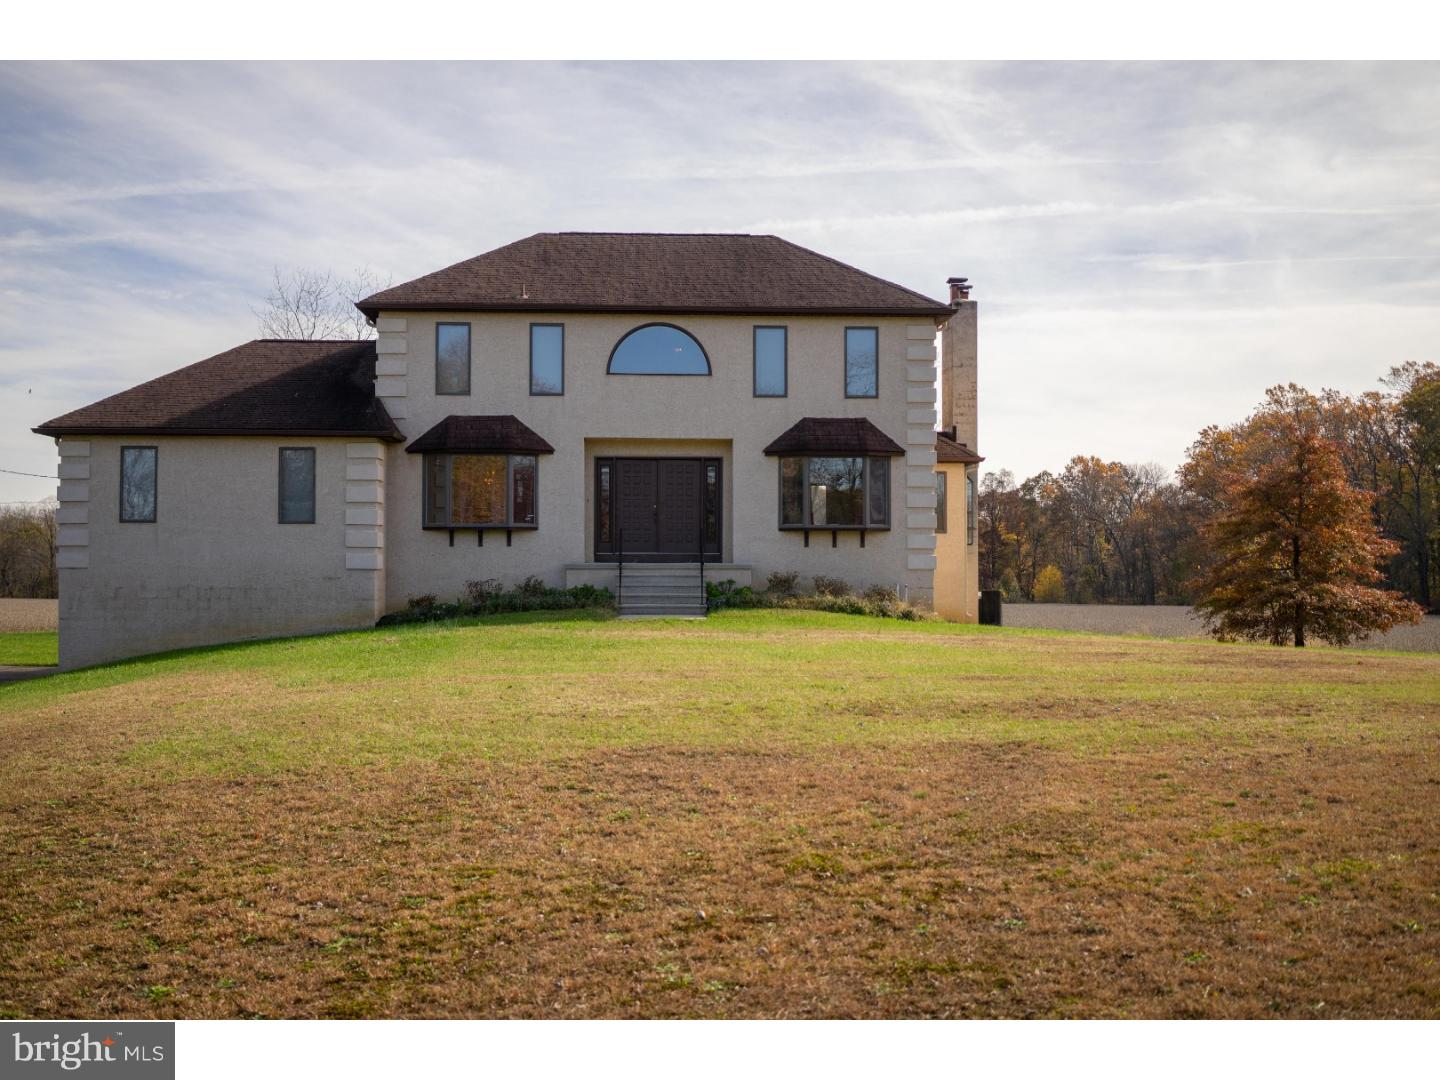 1070 HEDDING JACKSONVILLE ROAD, SPRINGFIELD TWP, NJ 08505